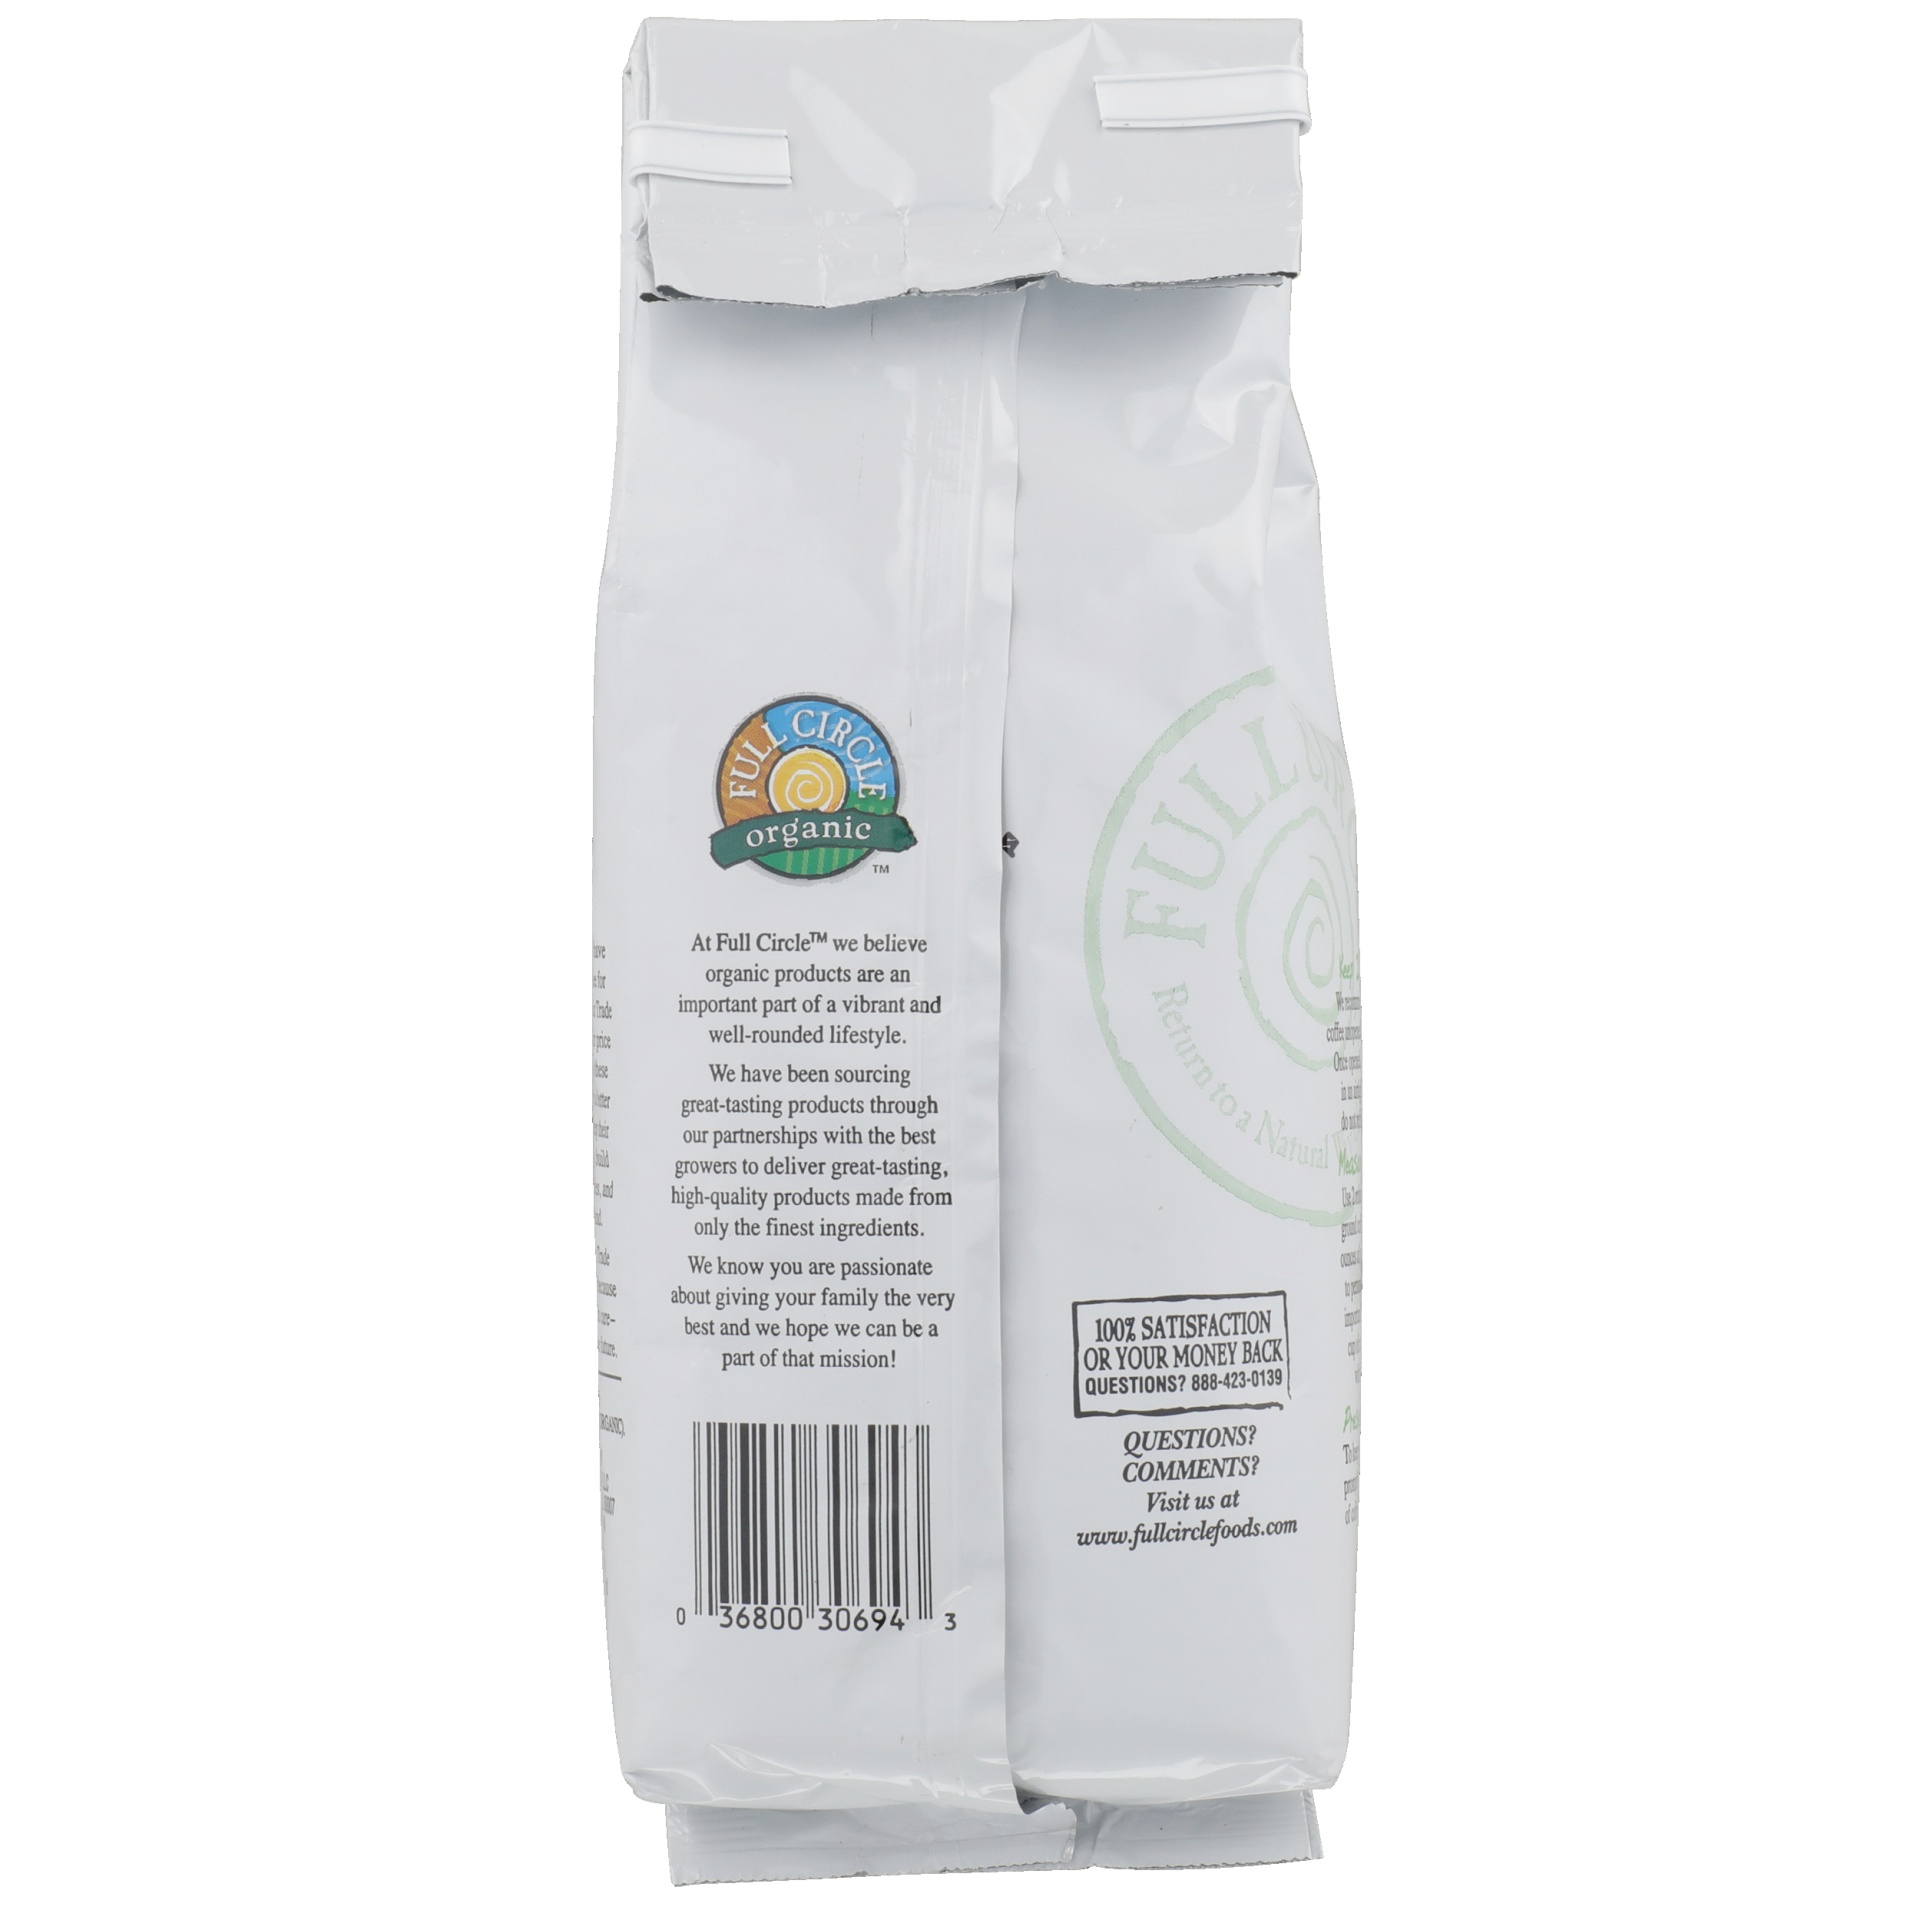 slide 2 of 6, Full Circle Market Medium Roast Decaf Signature Blend Hand-crafted 100% Arabica Ground Coffee,